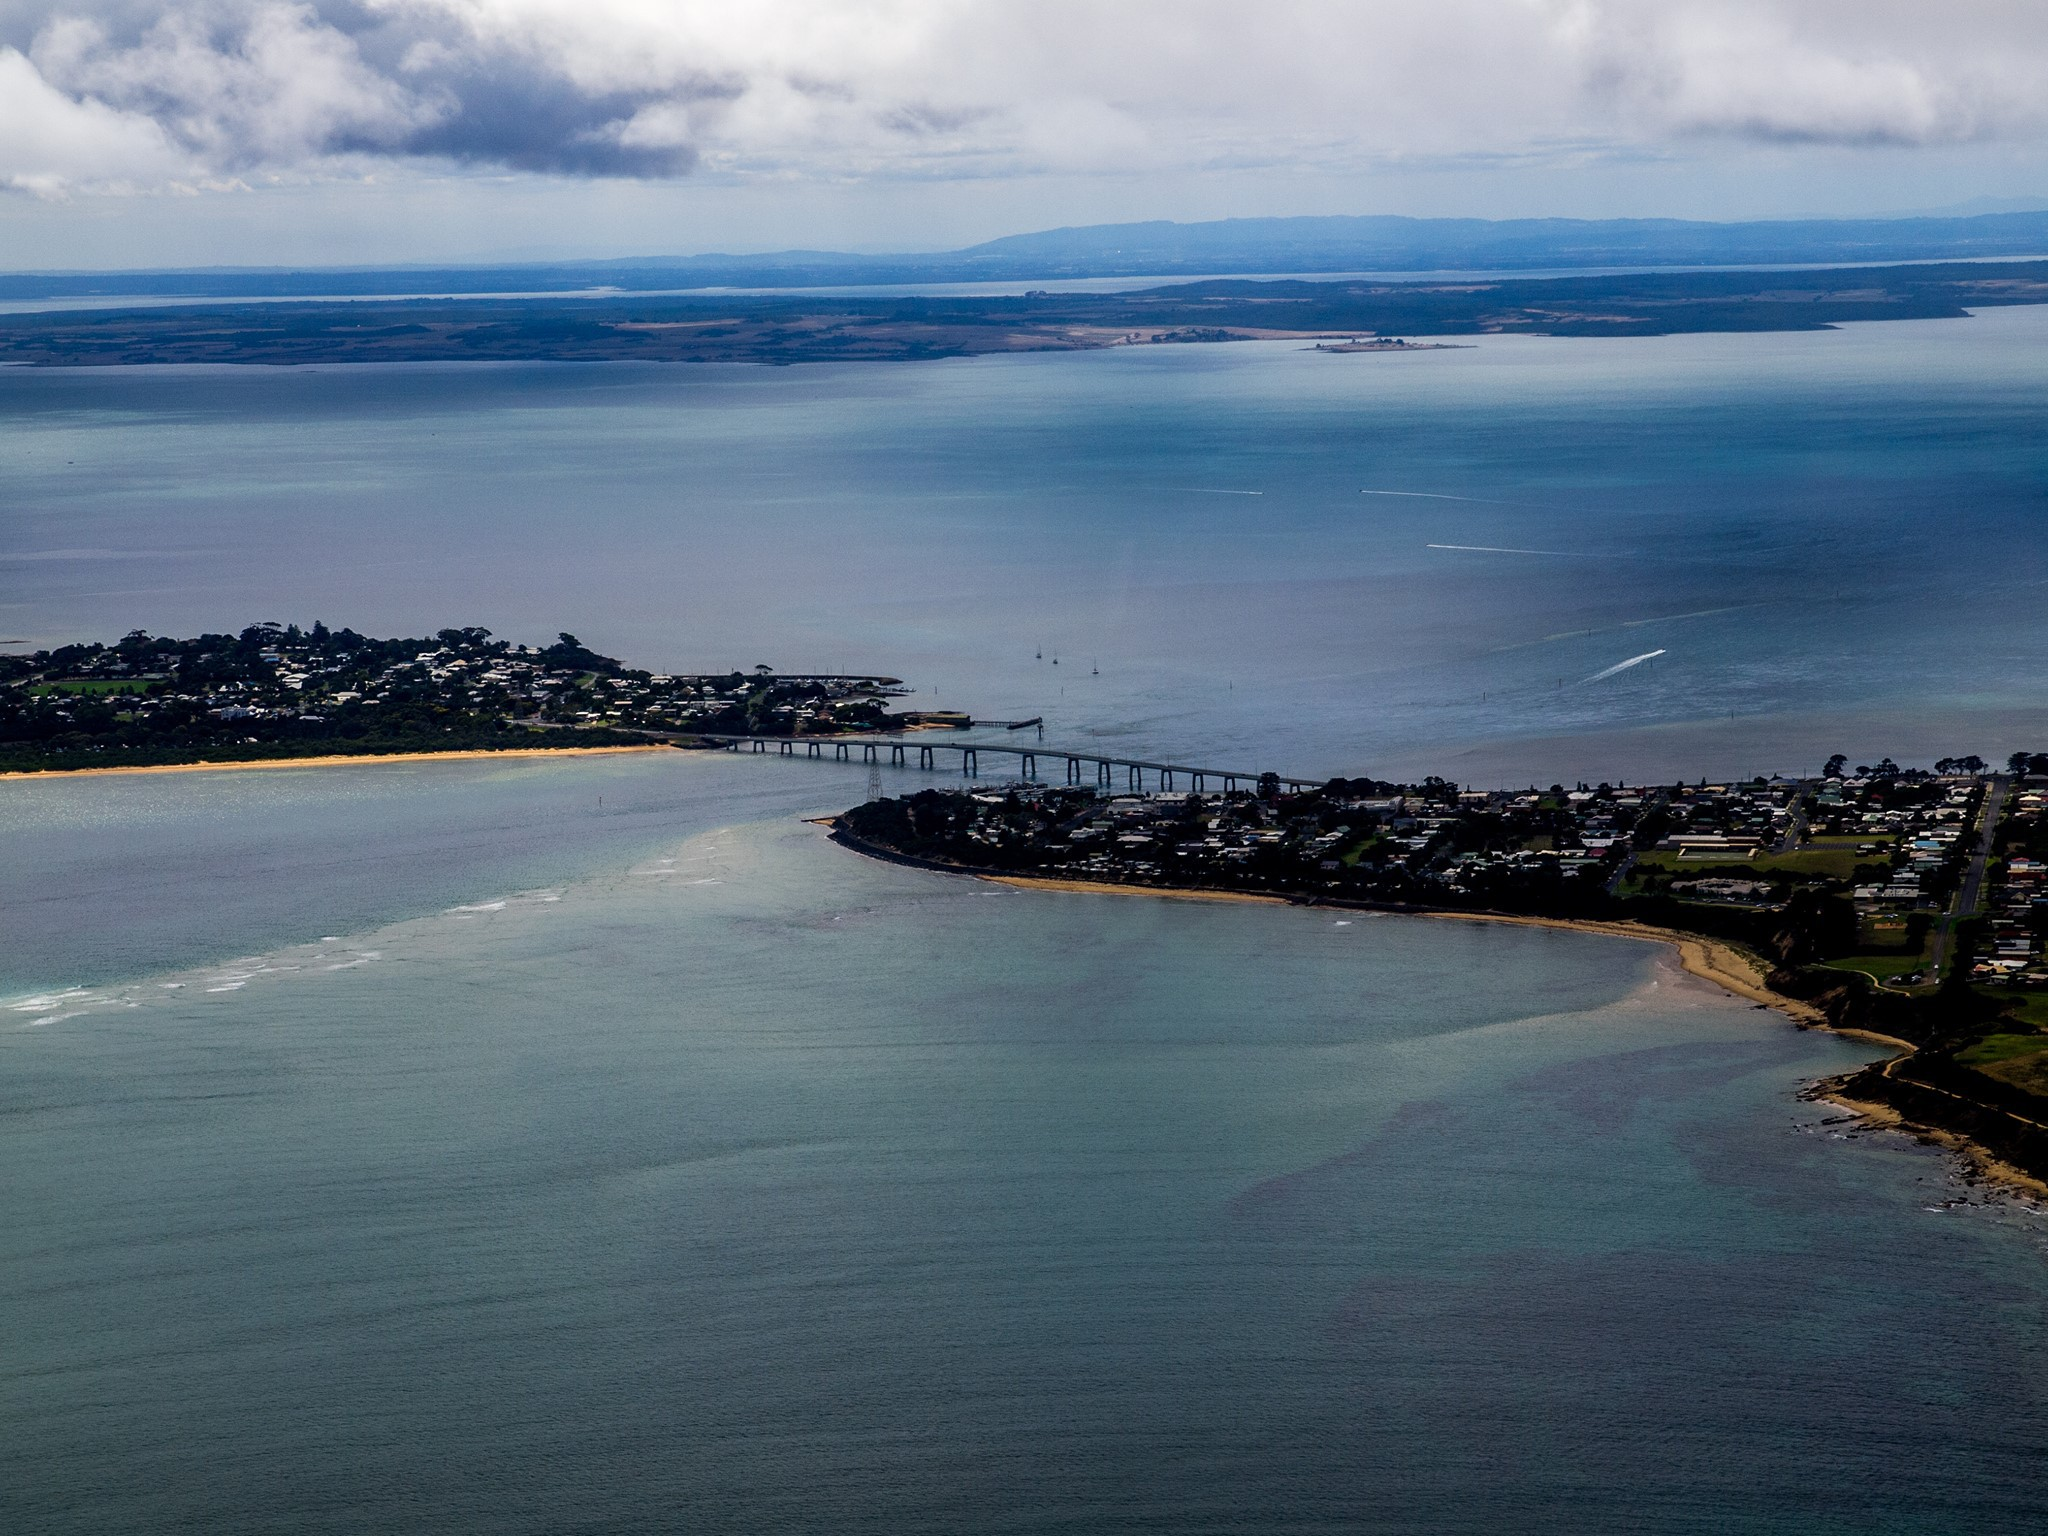 Melbourne Helicopters To Phillip Island